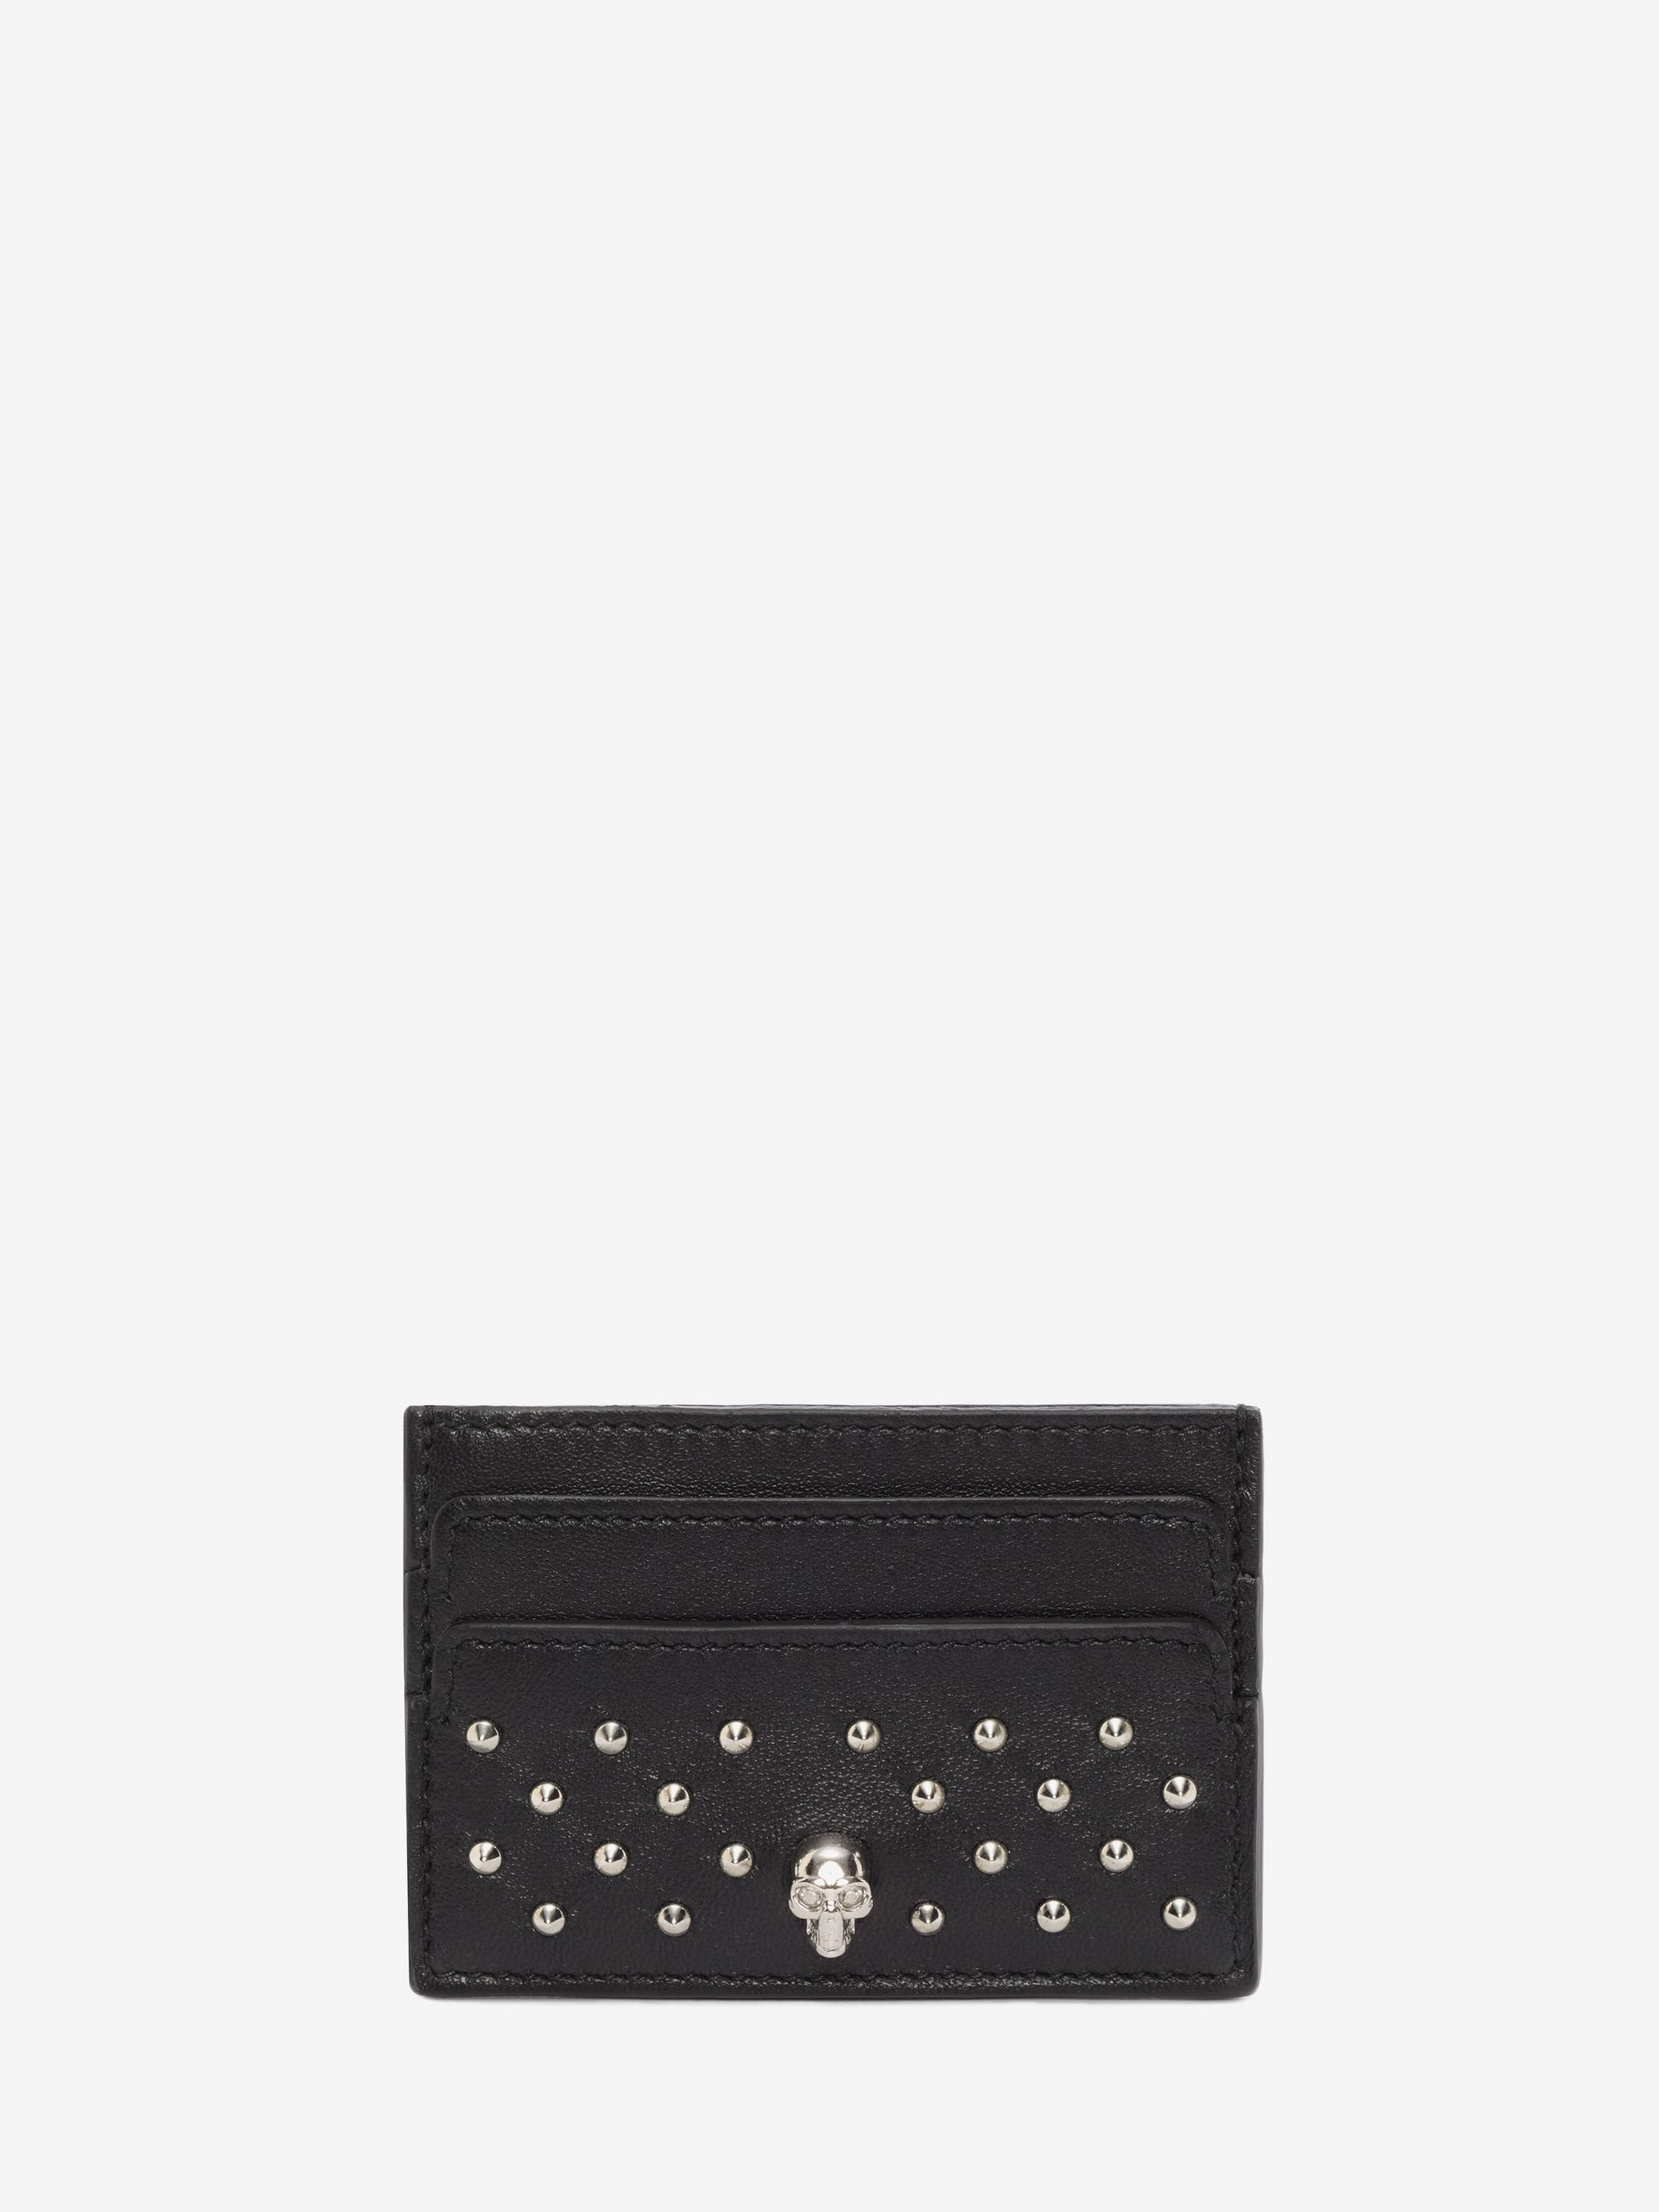 【Alexander McQueen】STUDDED CARD HOLDER